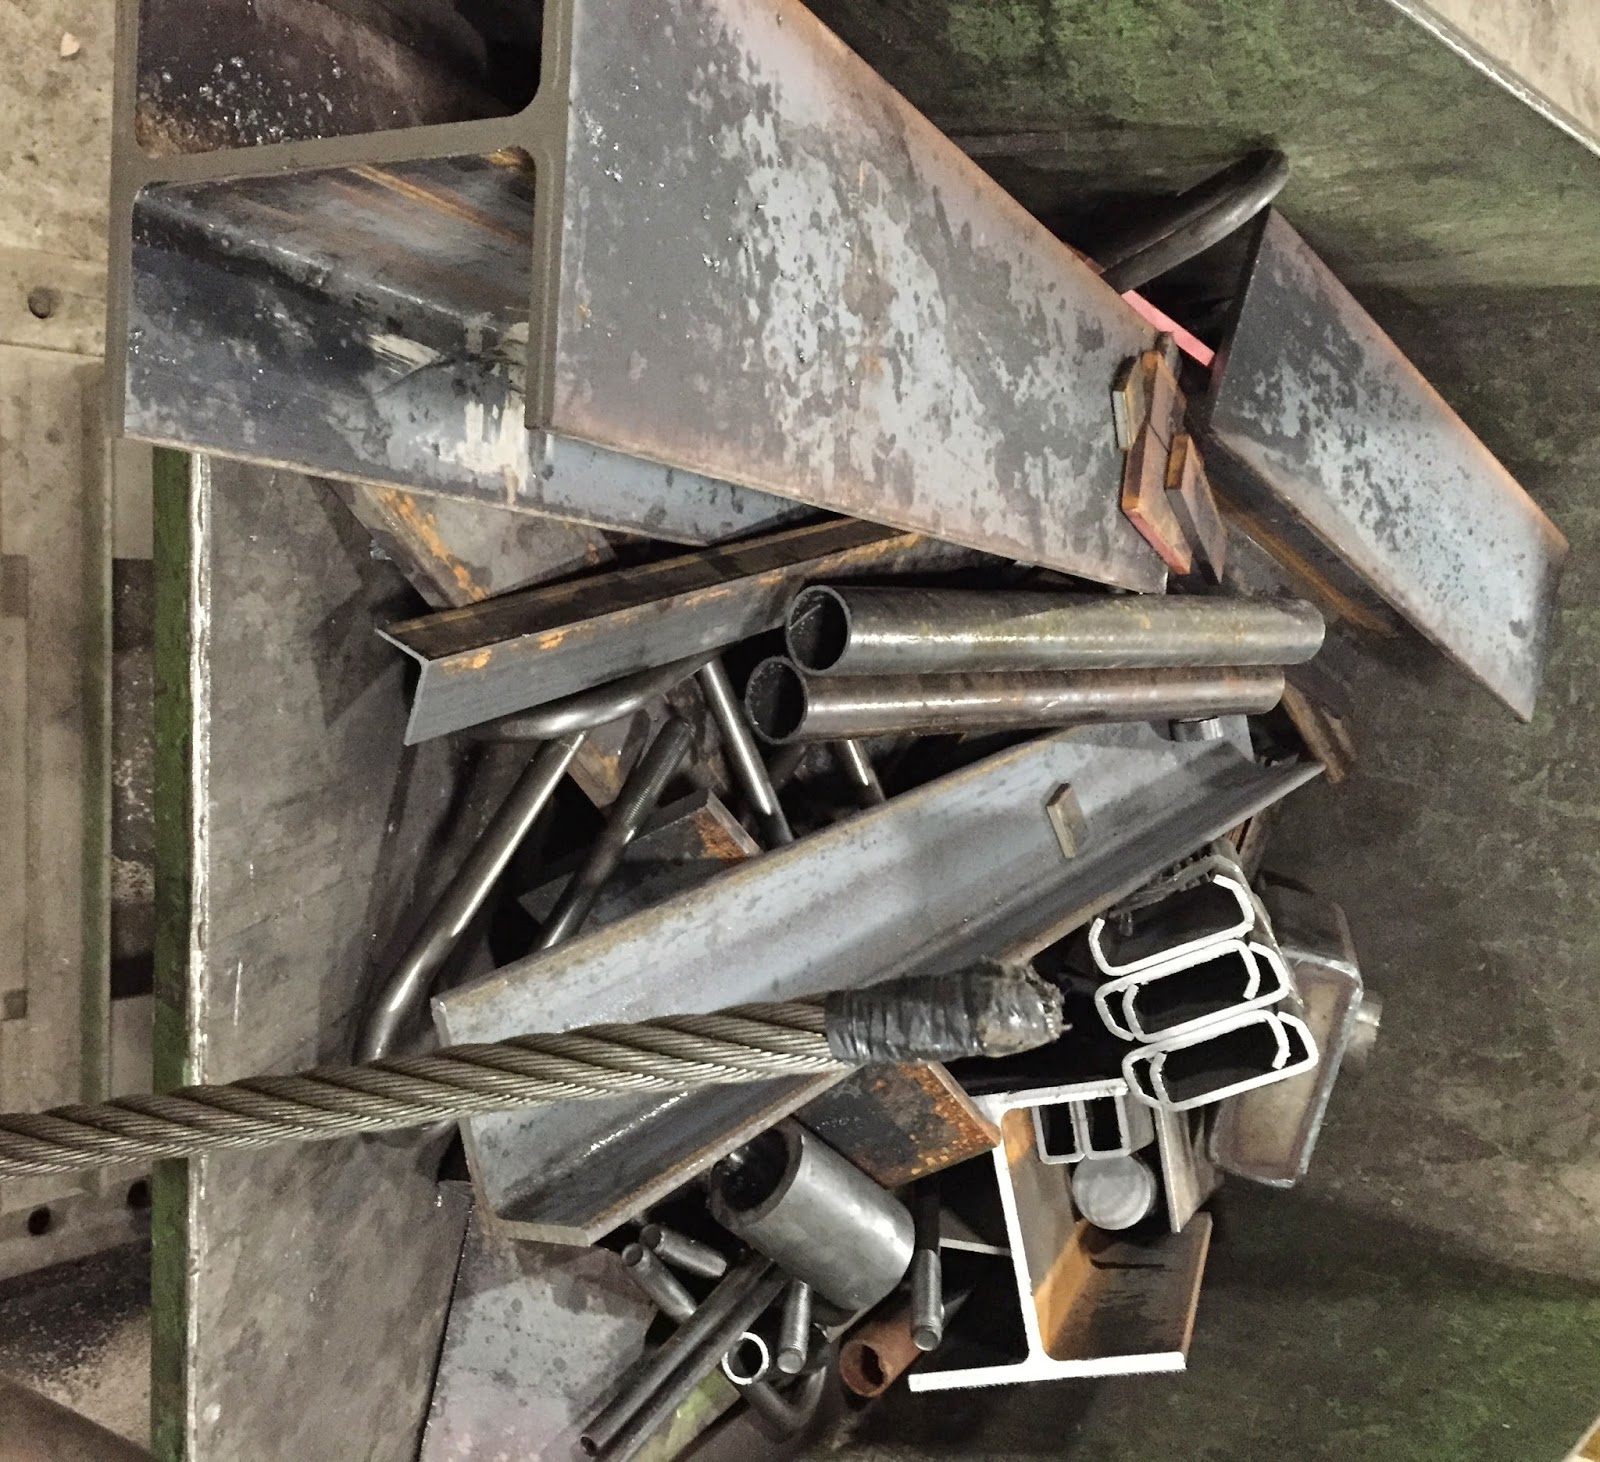 Aluminum Scrap Metal Recycling Can likewise Arcgency Wfh House Wuxi China additionally Scrap Metal Raleigh Recycling Nc Prices For Copper further What We Recycle furthermore Window Caulking. on aluminum siding scrap prices